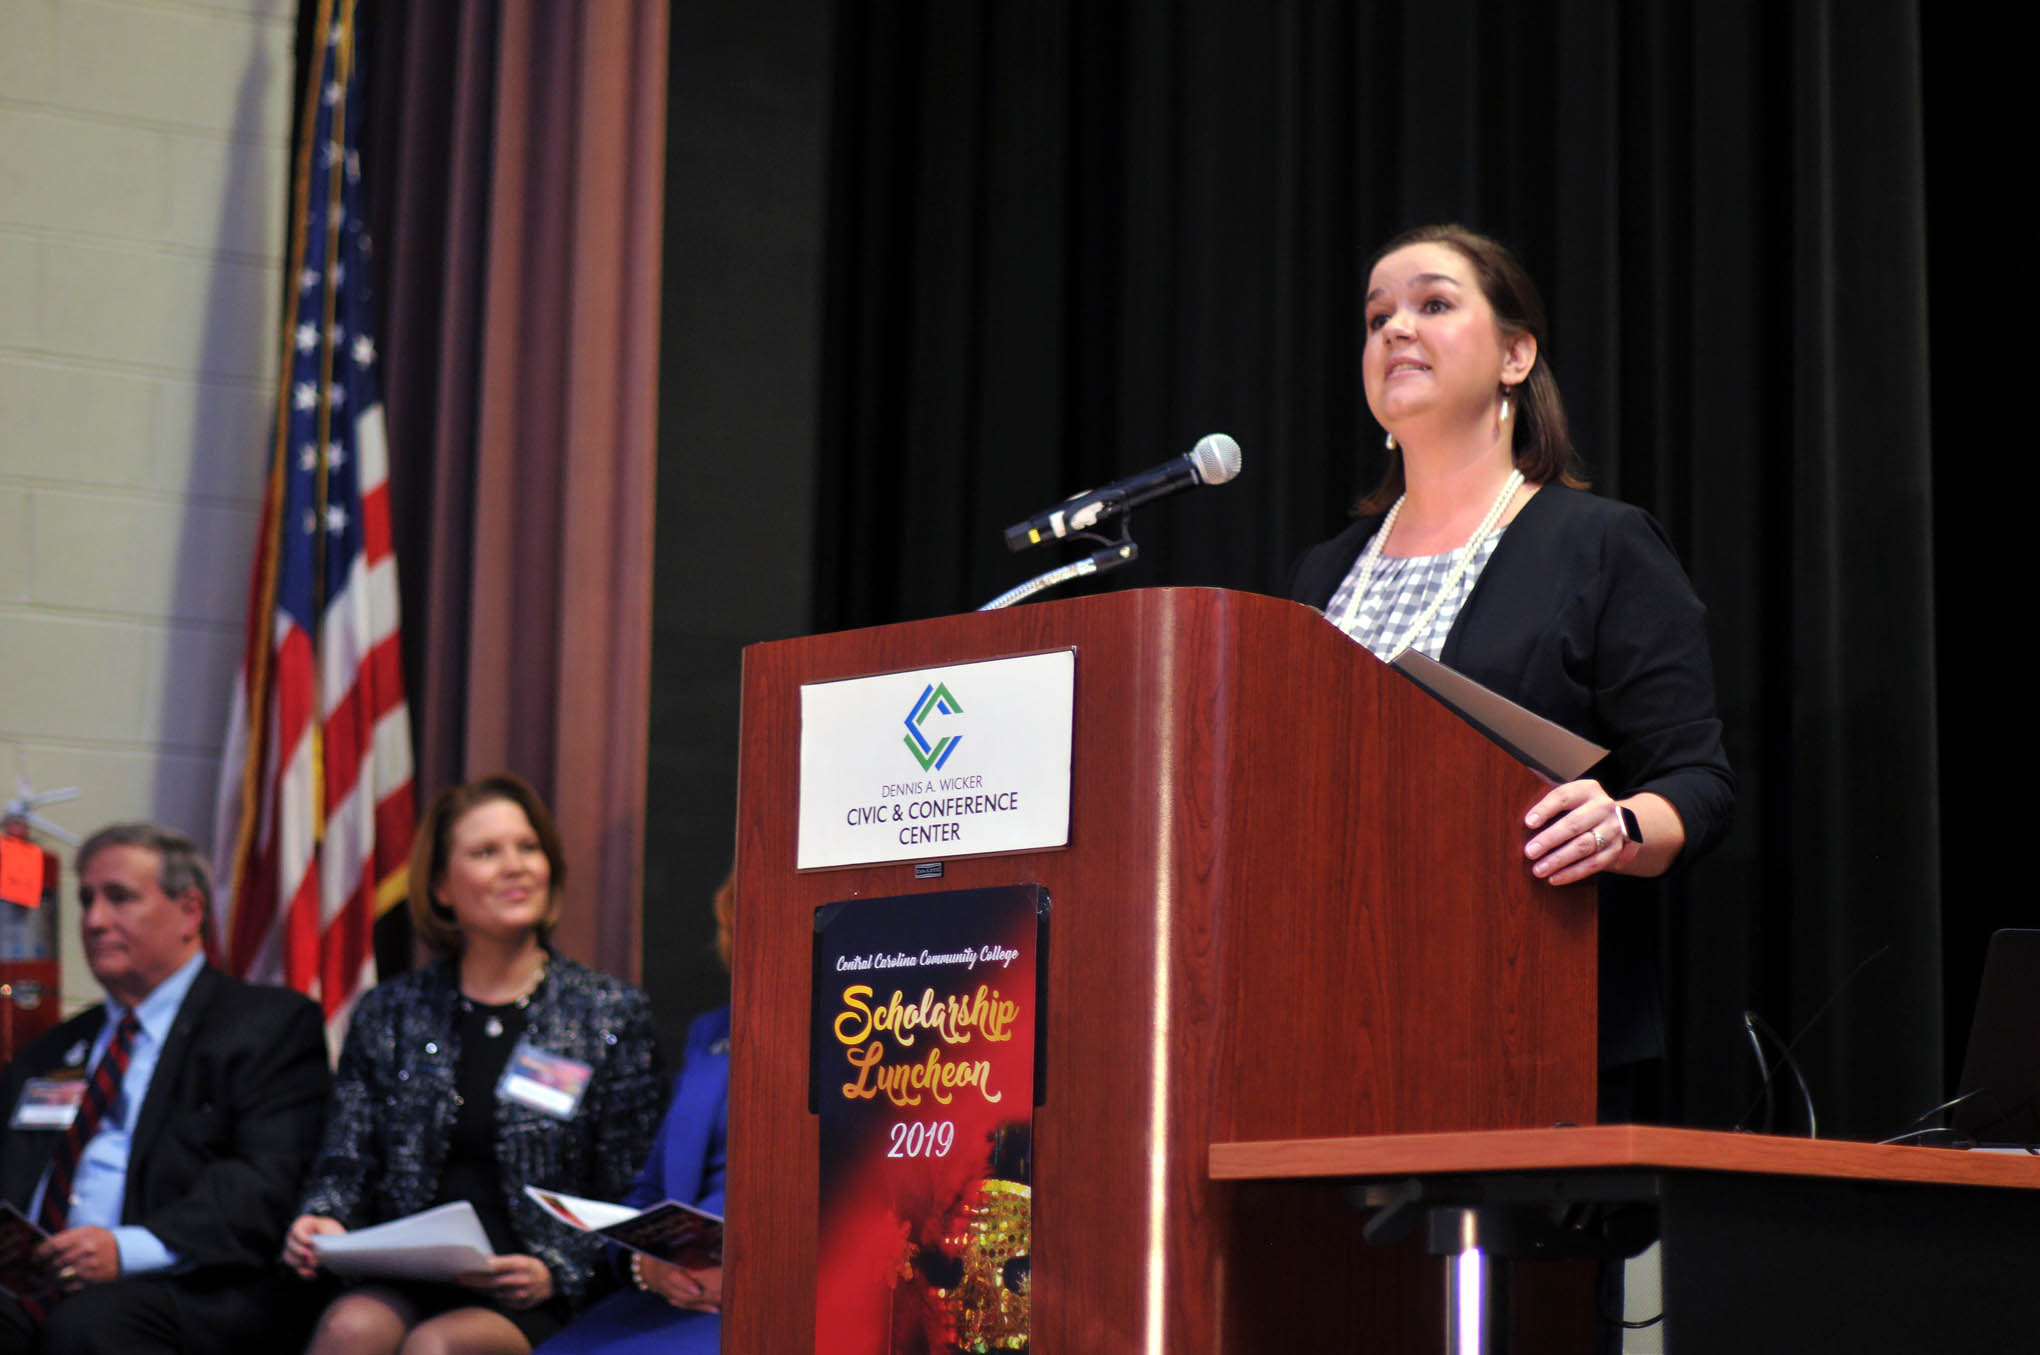 Click to enlarge,  Dr. Emily Hare, CCCC Foundation Executive Director, provided welcoming remarks during the Central Carolina Community College Foundation Scholarship Luncheon on Wednesday, Nov. 20, at the Dennis A. Wicker Civic & Conference Center.